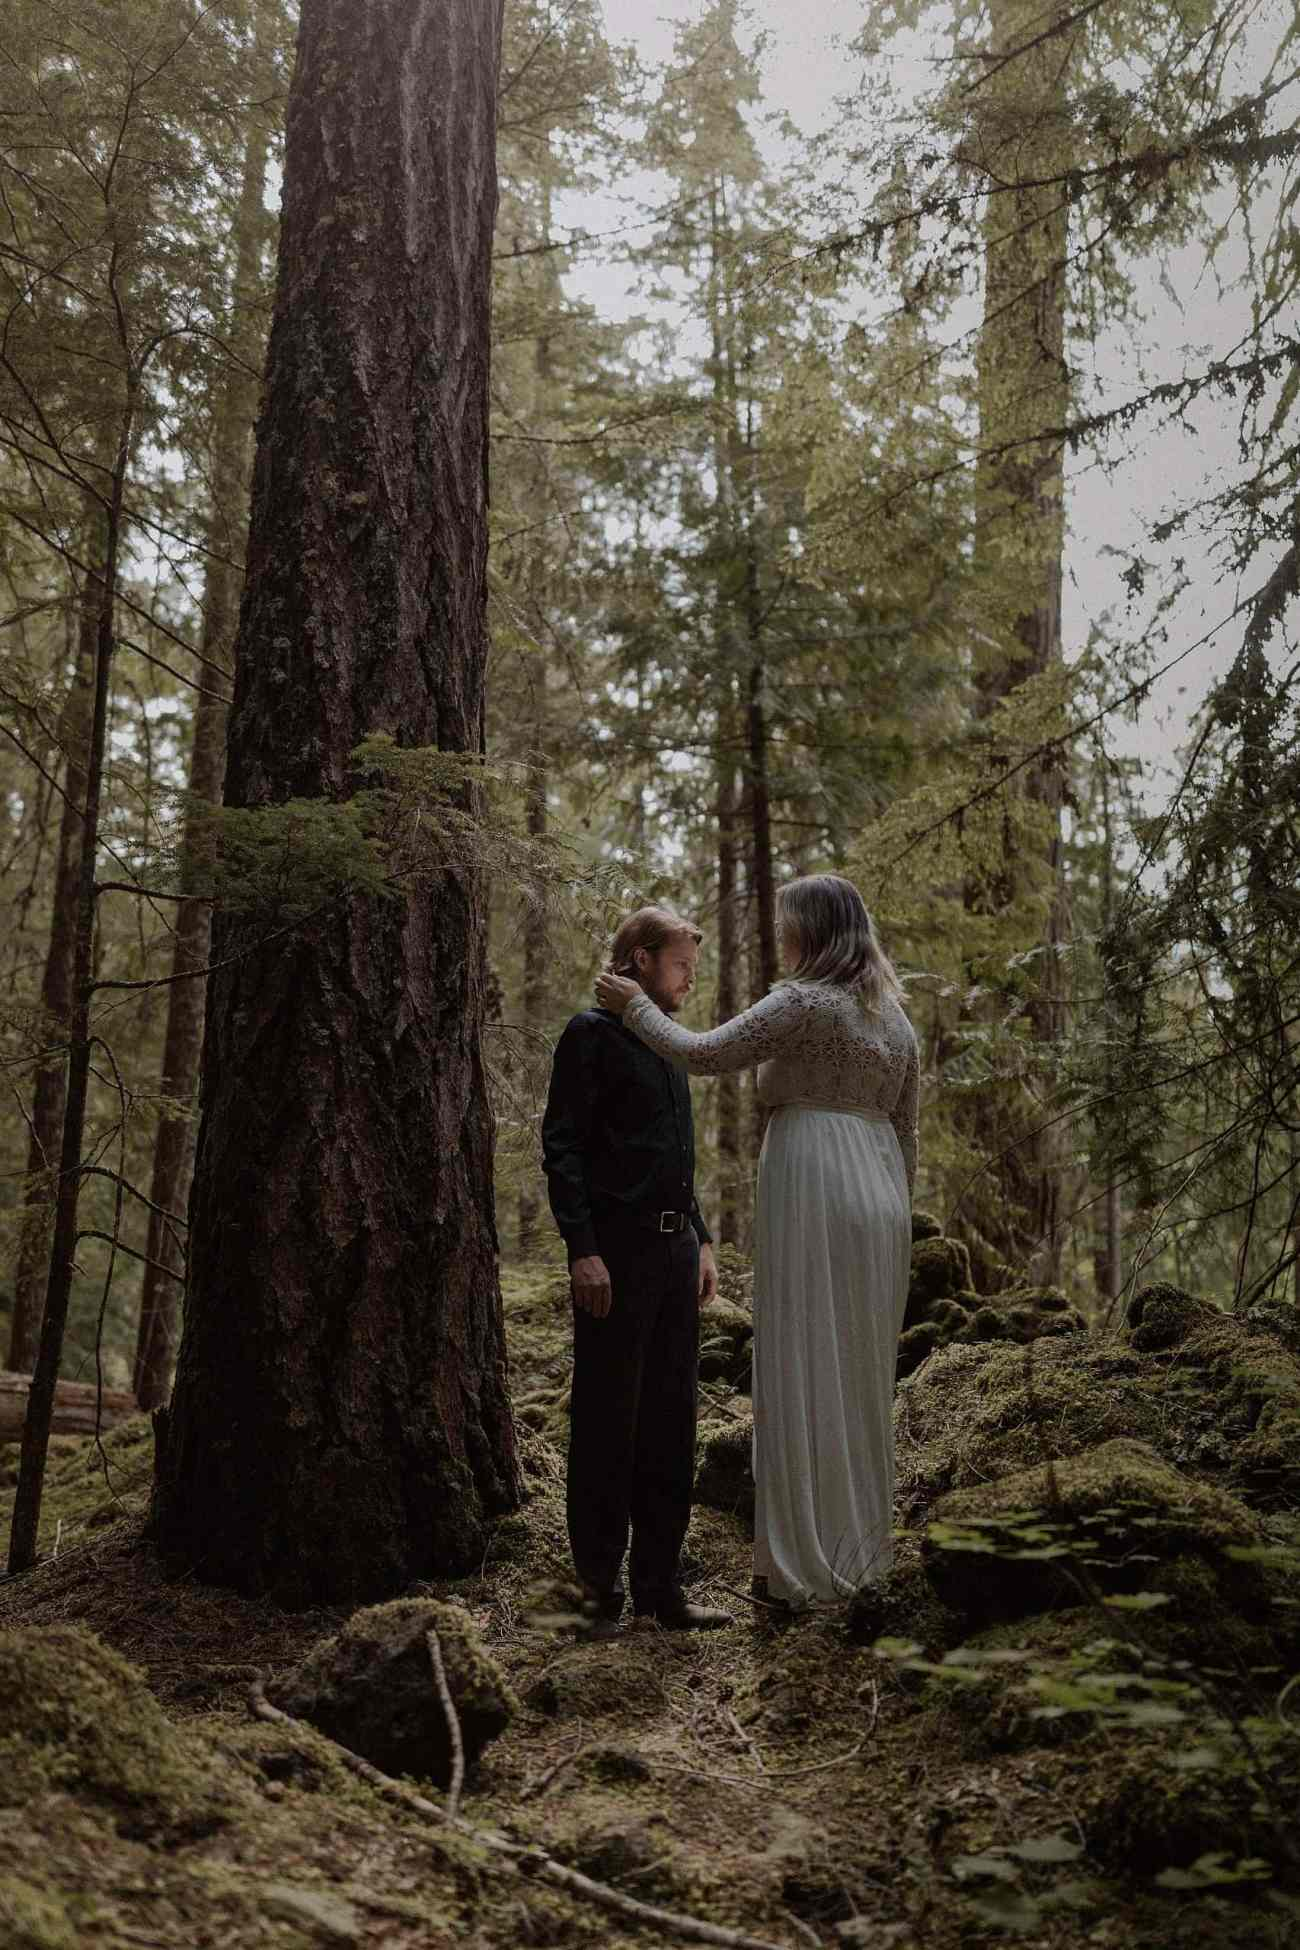 Couple hiking in the forest for their wedding